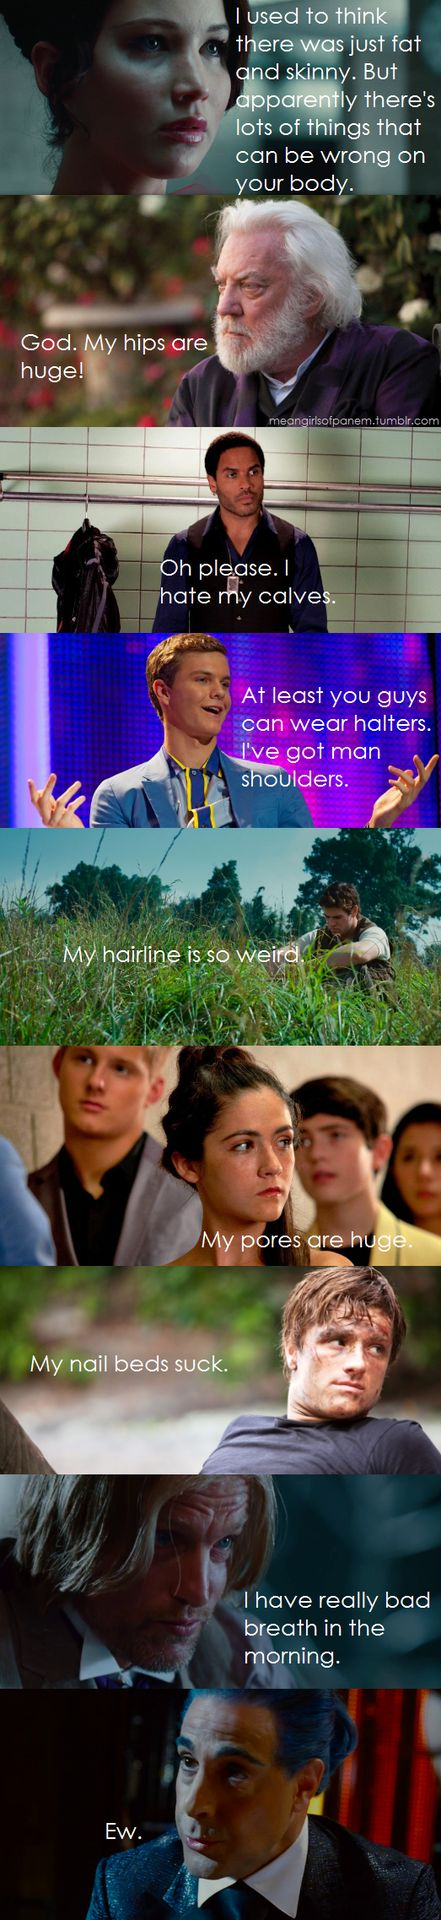 Apparently there's lots of things that can be wrong with your body! So funny. Love Mean Girls and The Hunger Games